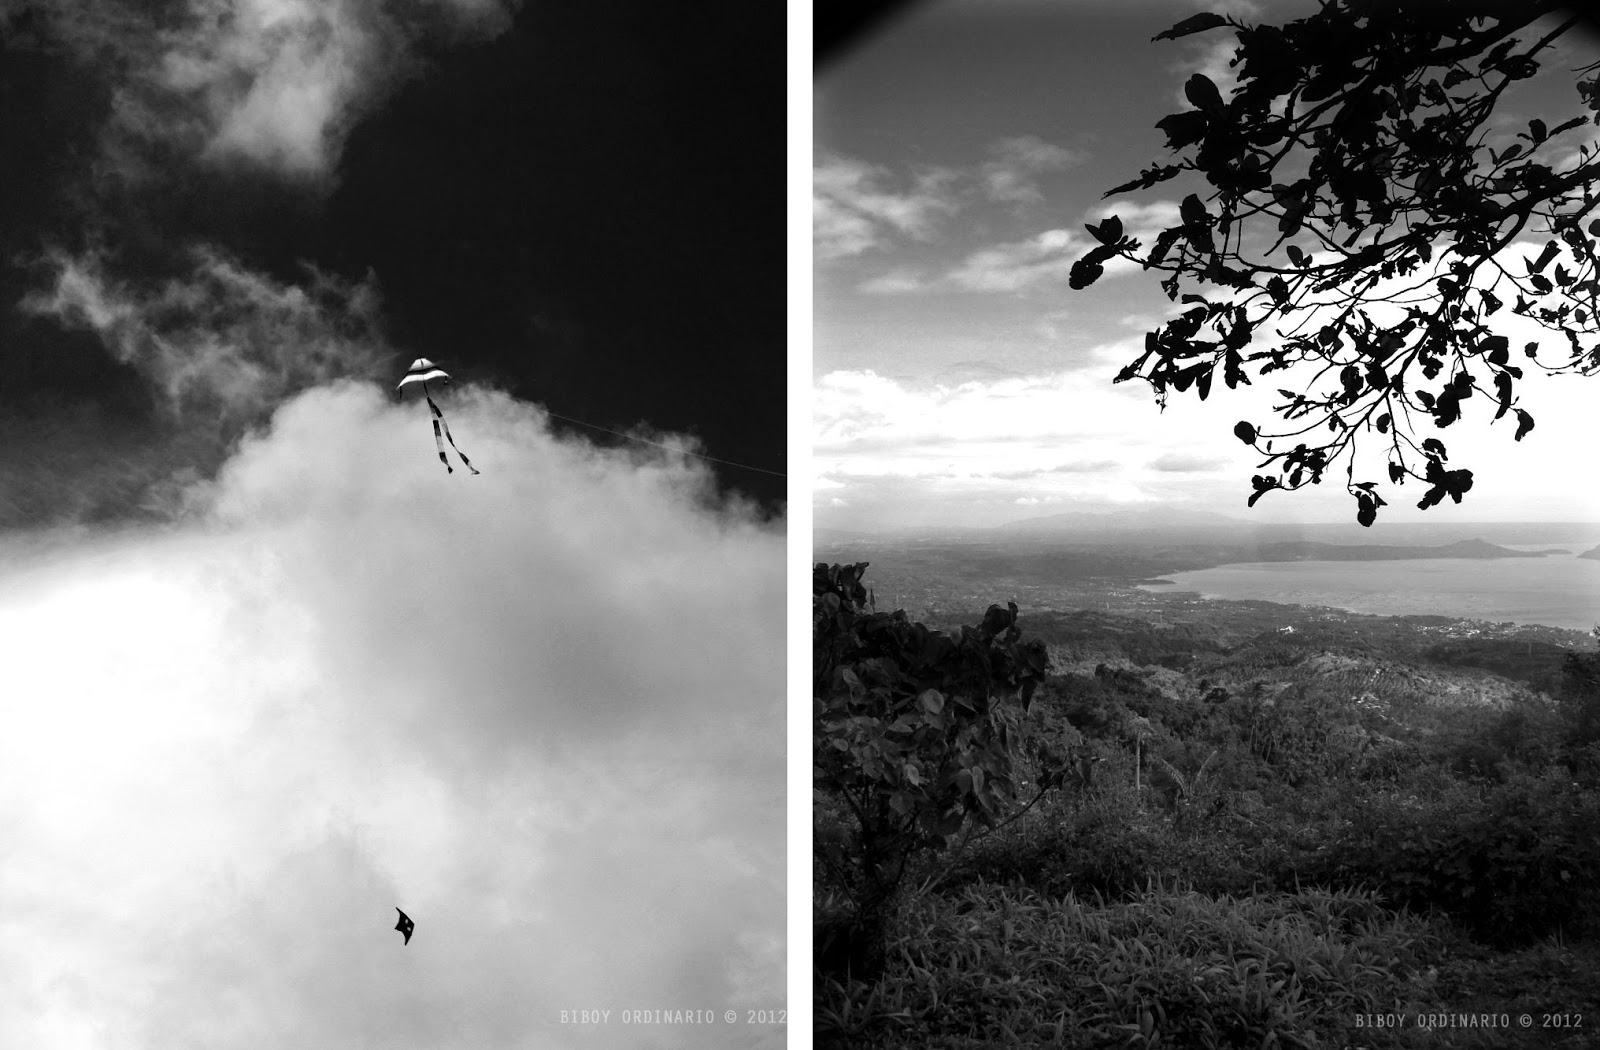 kite flying in the philippines and beautiful view in Picnic grove tagaytay